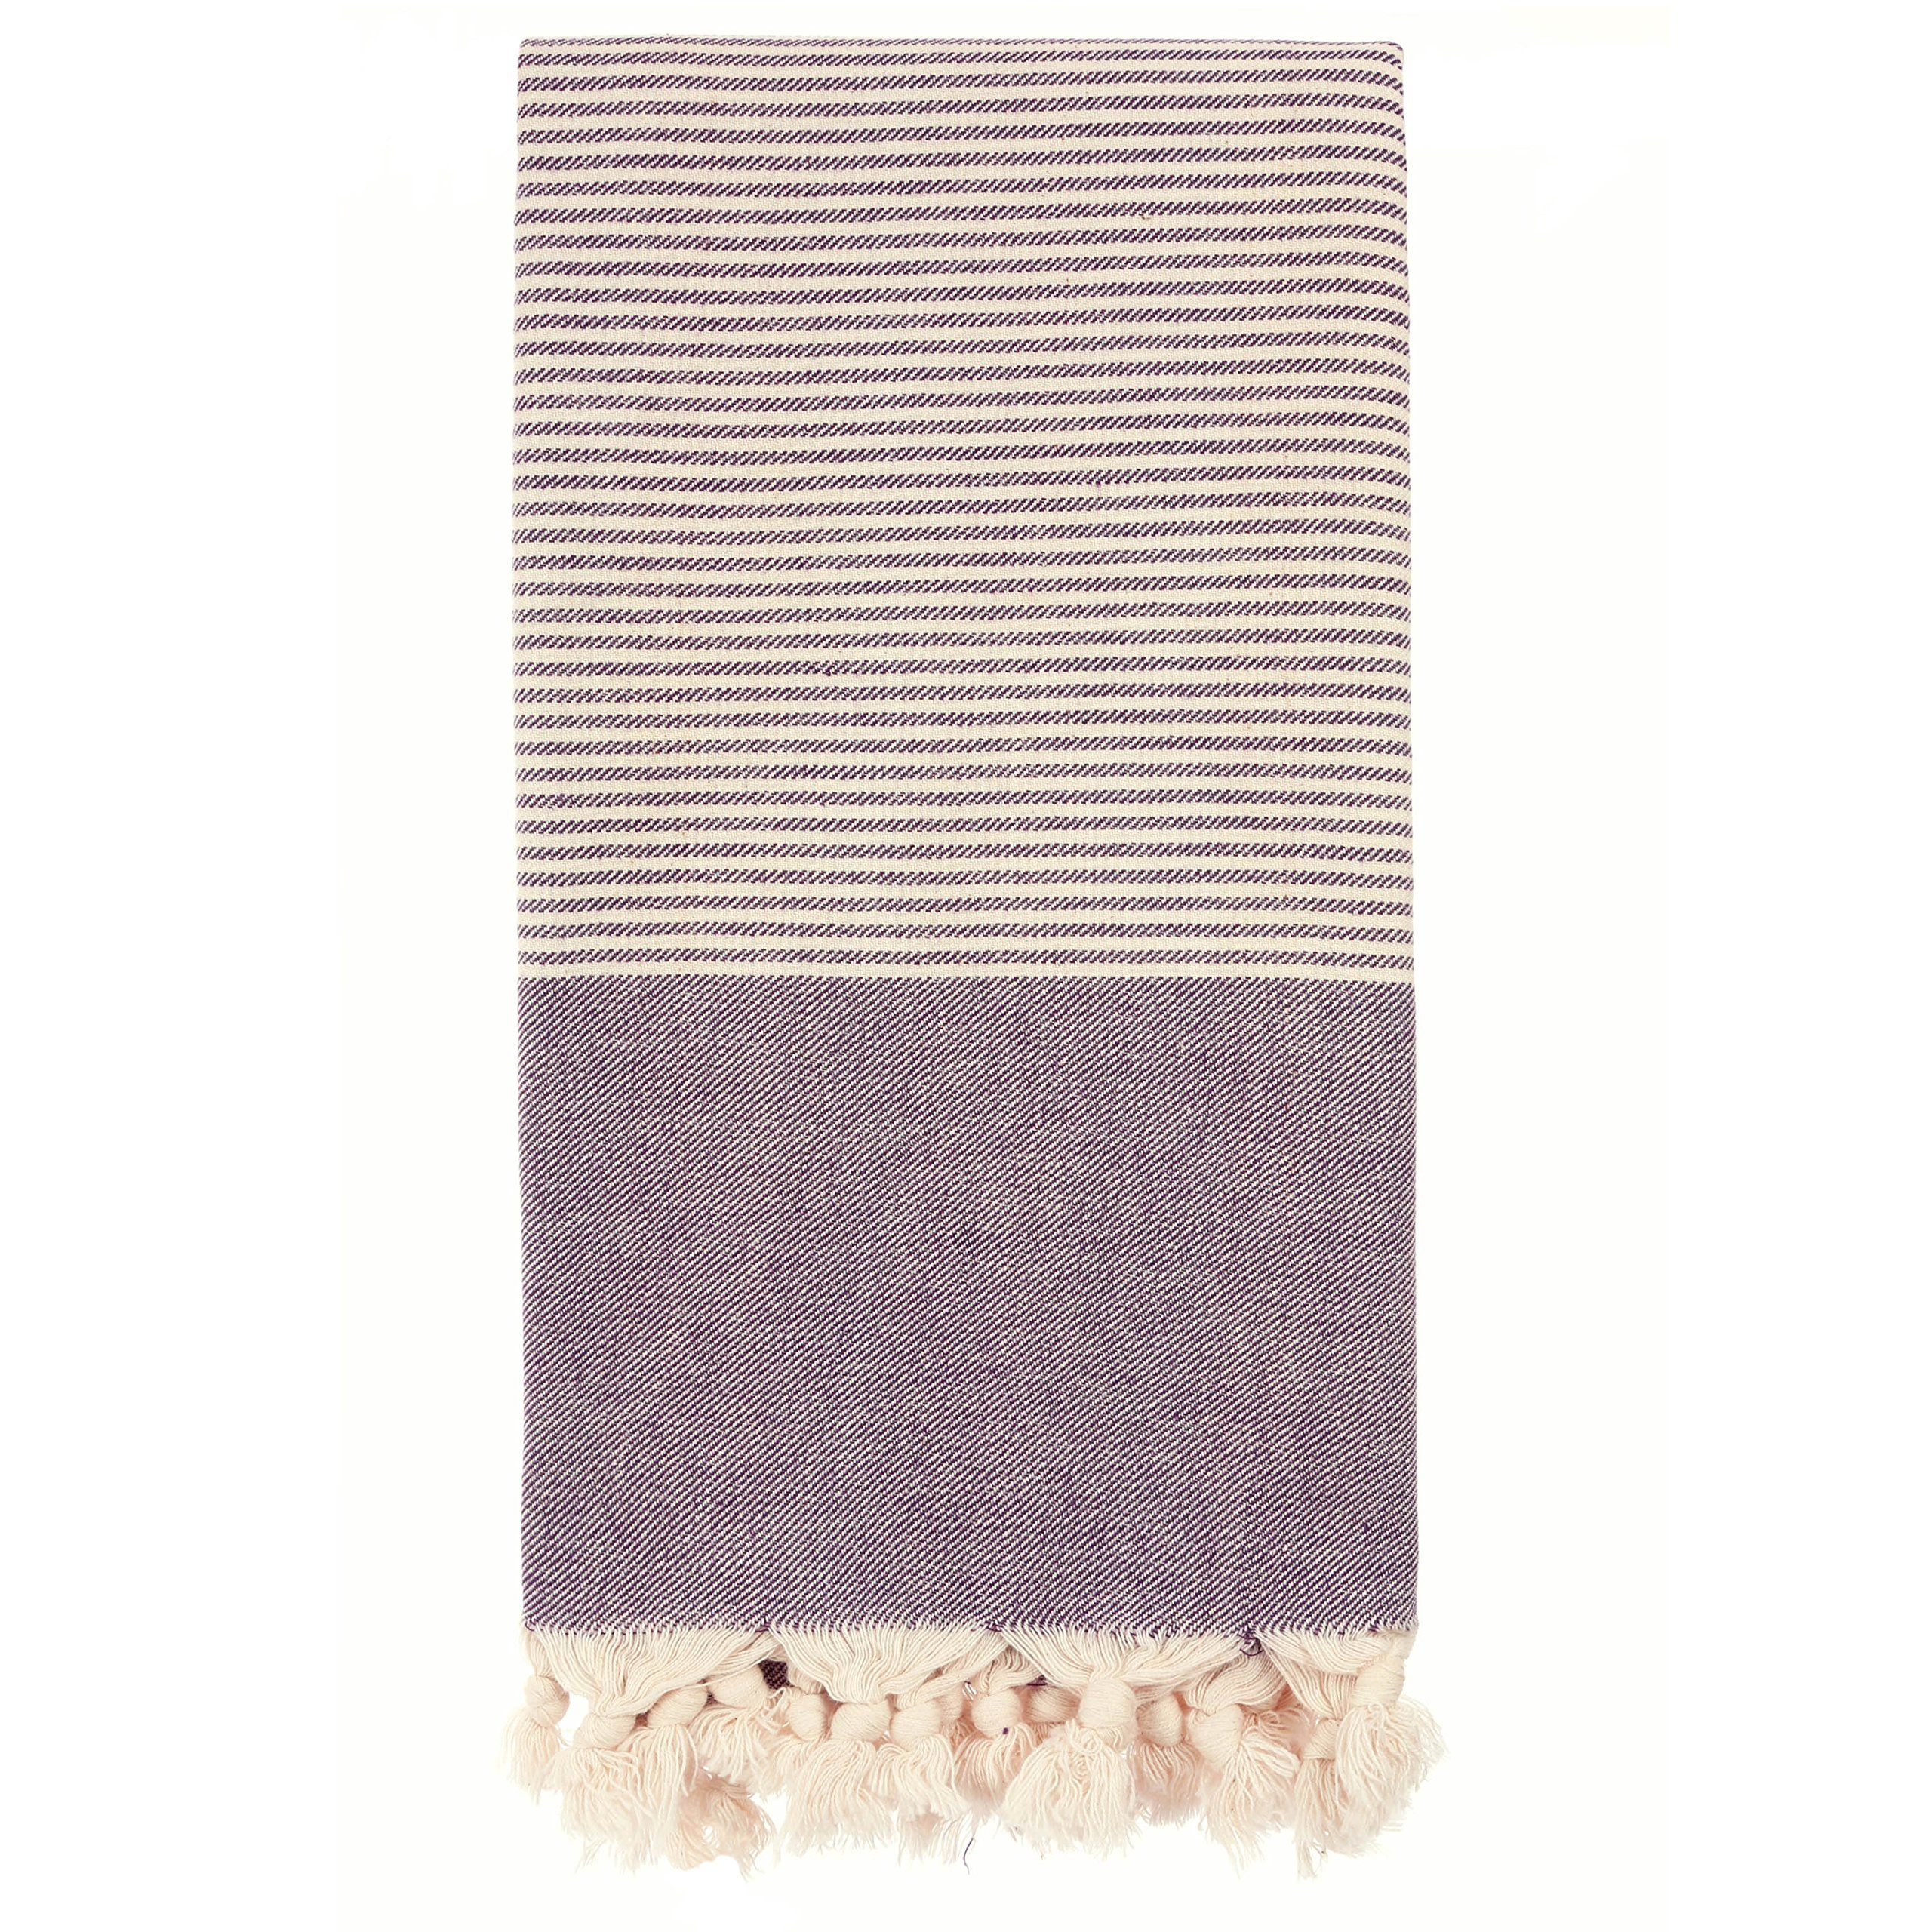 hand loomed pestemal striped turkish bath towel 34x66 100 cottontm by cacala darkpurple